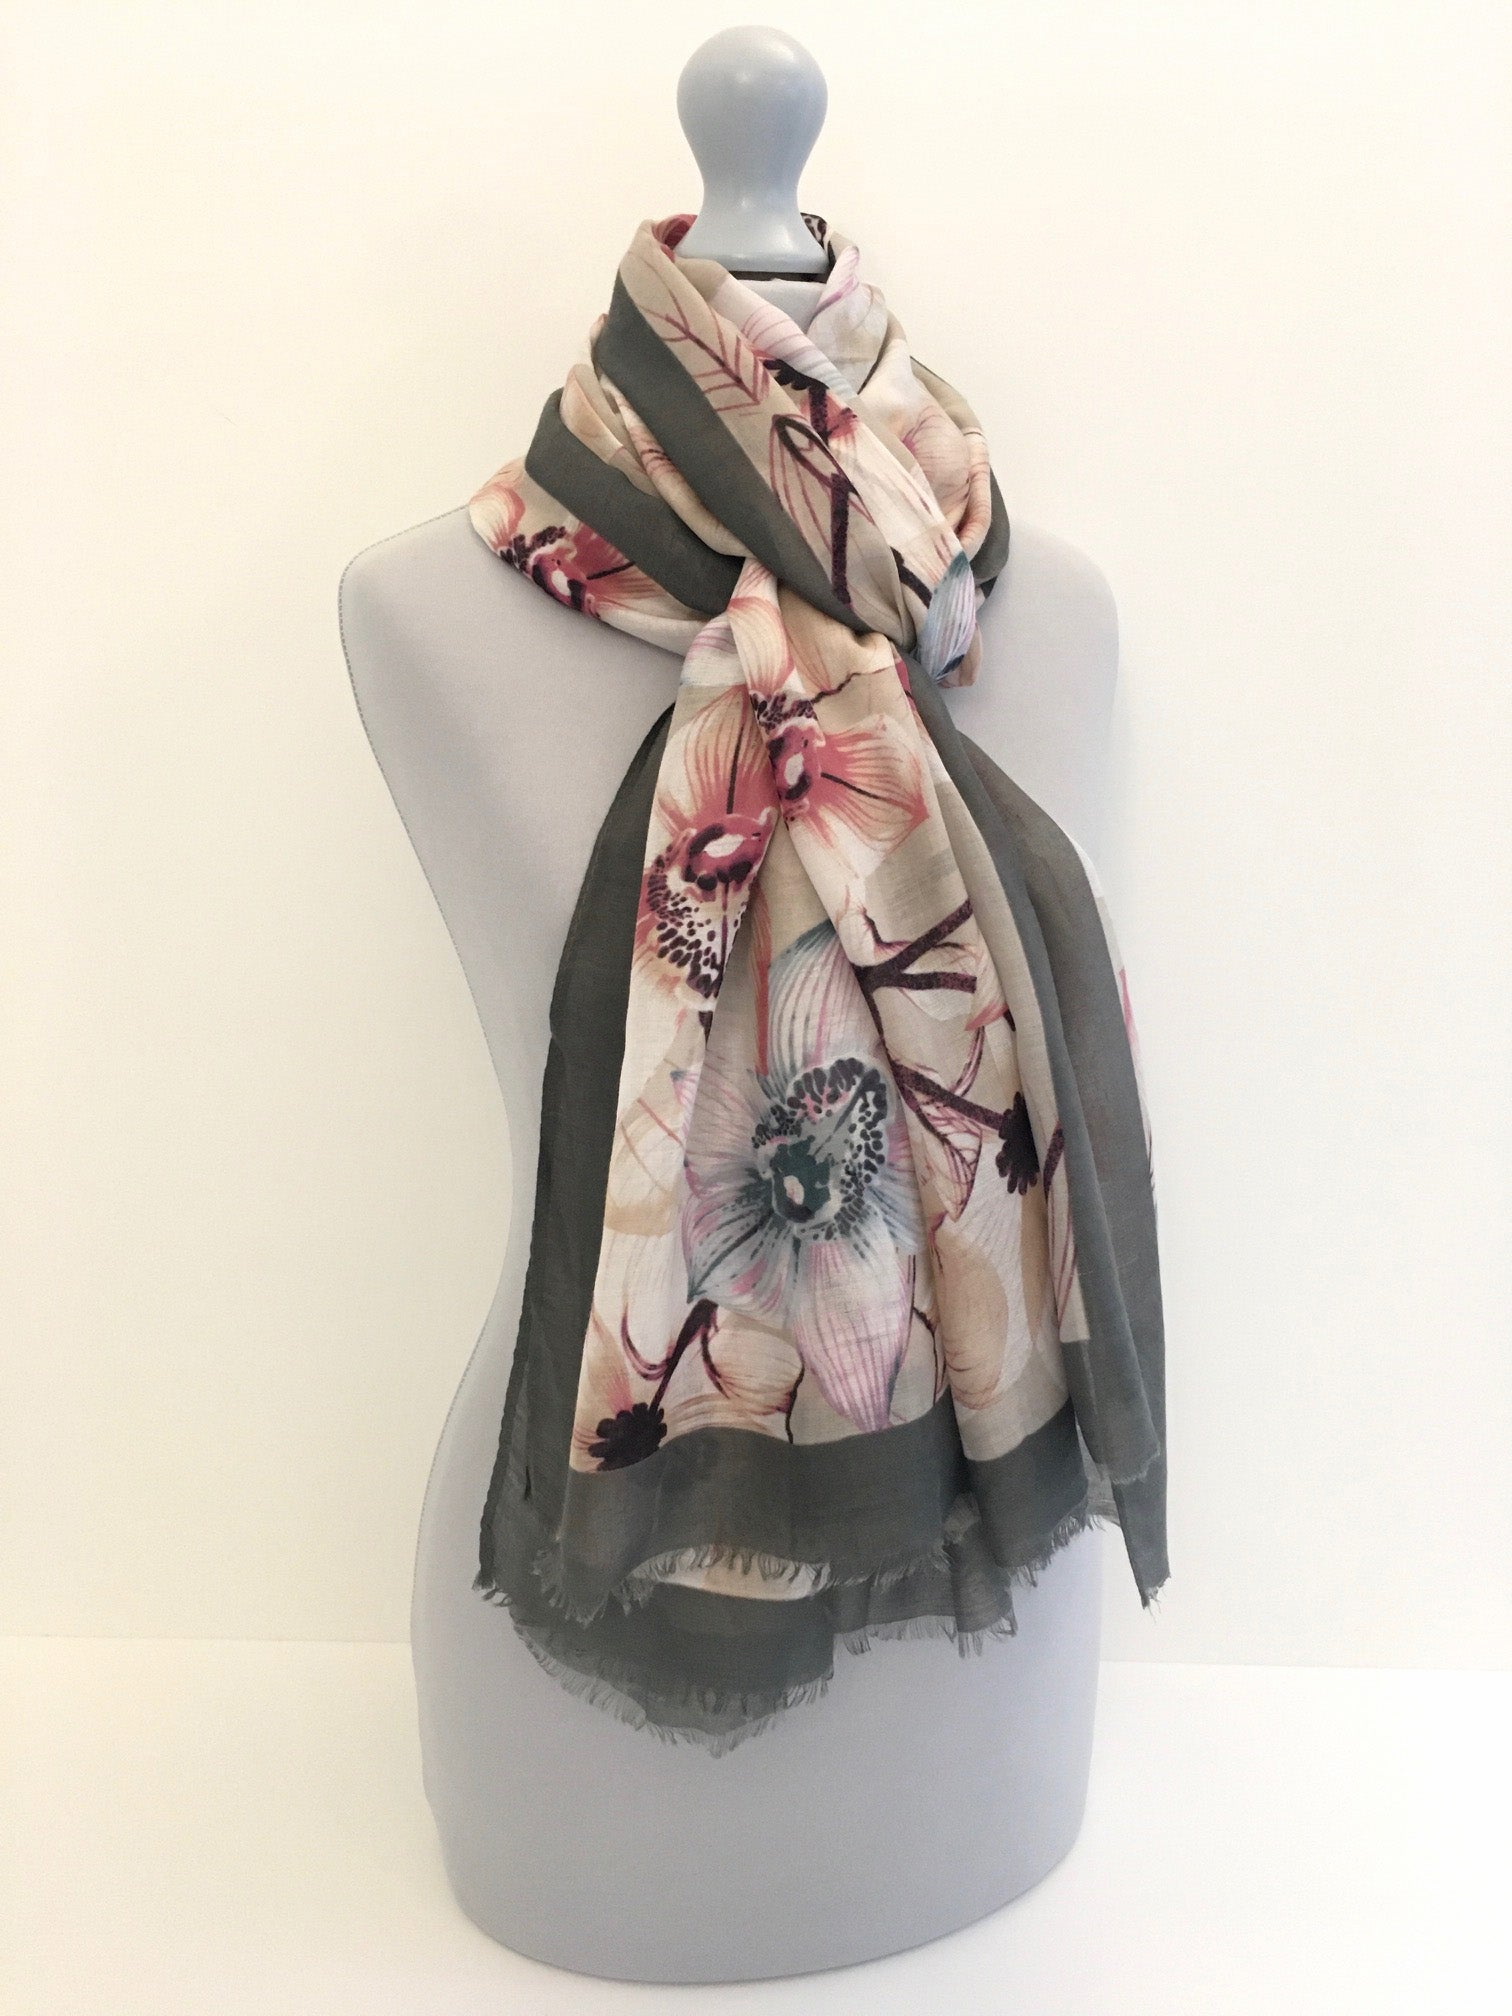 A-SHU LARGE GREY BORDER FLORAL PRINT SCARF - A-SHU.CO.UK